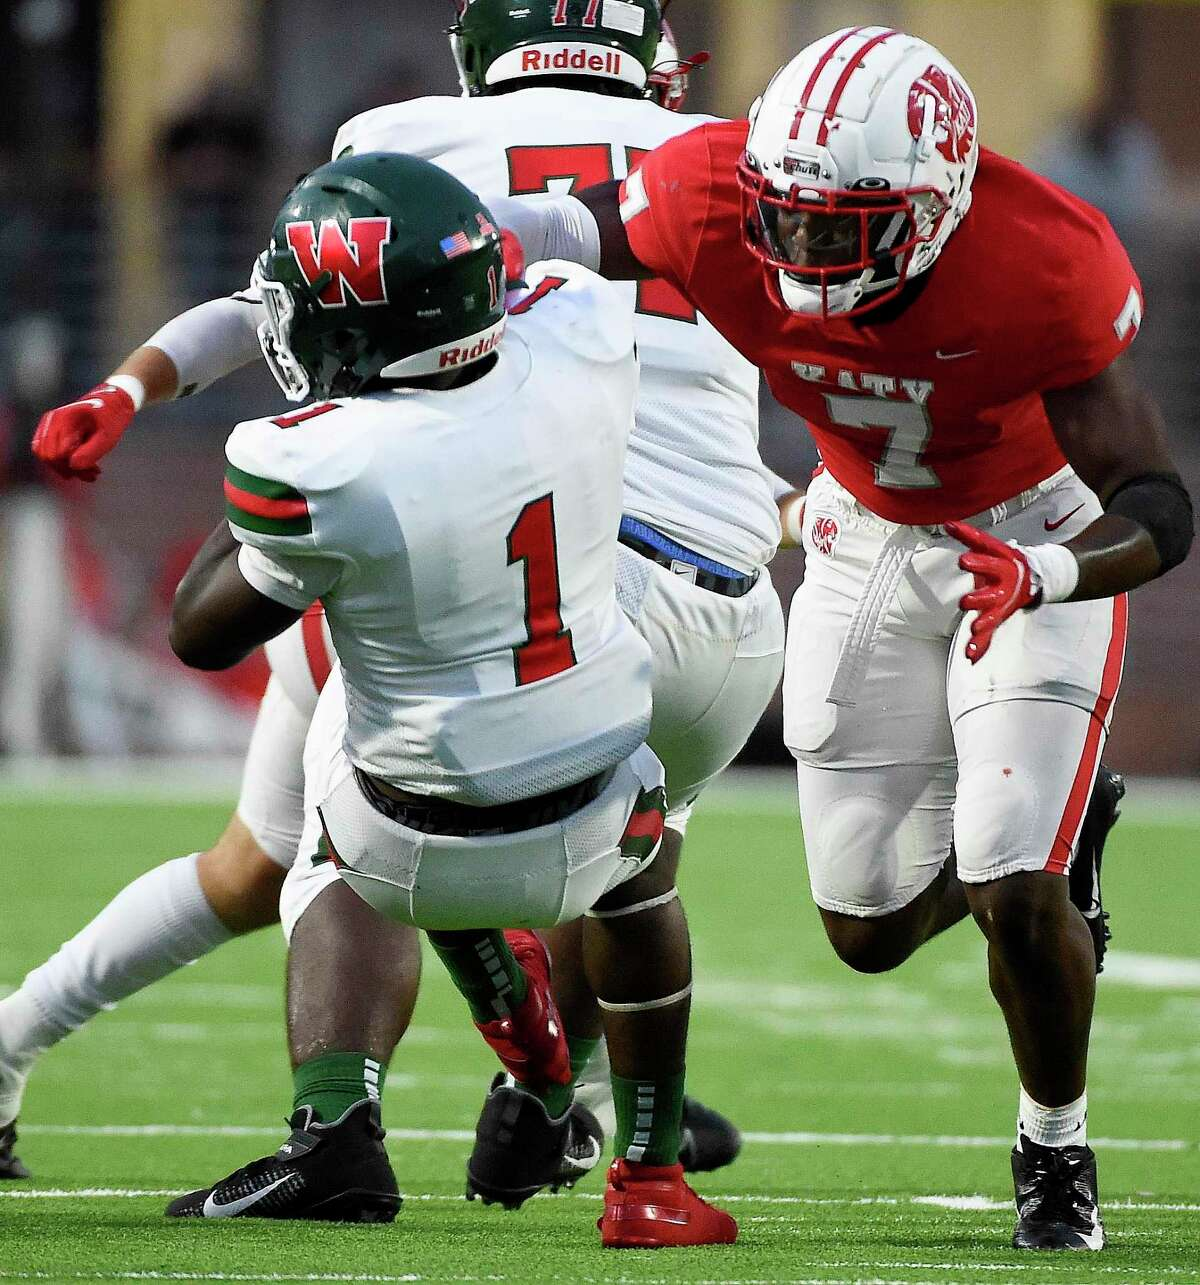 Katy defensive back Johnathan Hall (7) tacles The Woodlands running back JoBarre Reed for a loss during the first half of a high school football game, Thursday, Sept. 16, 2021, in Katy.